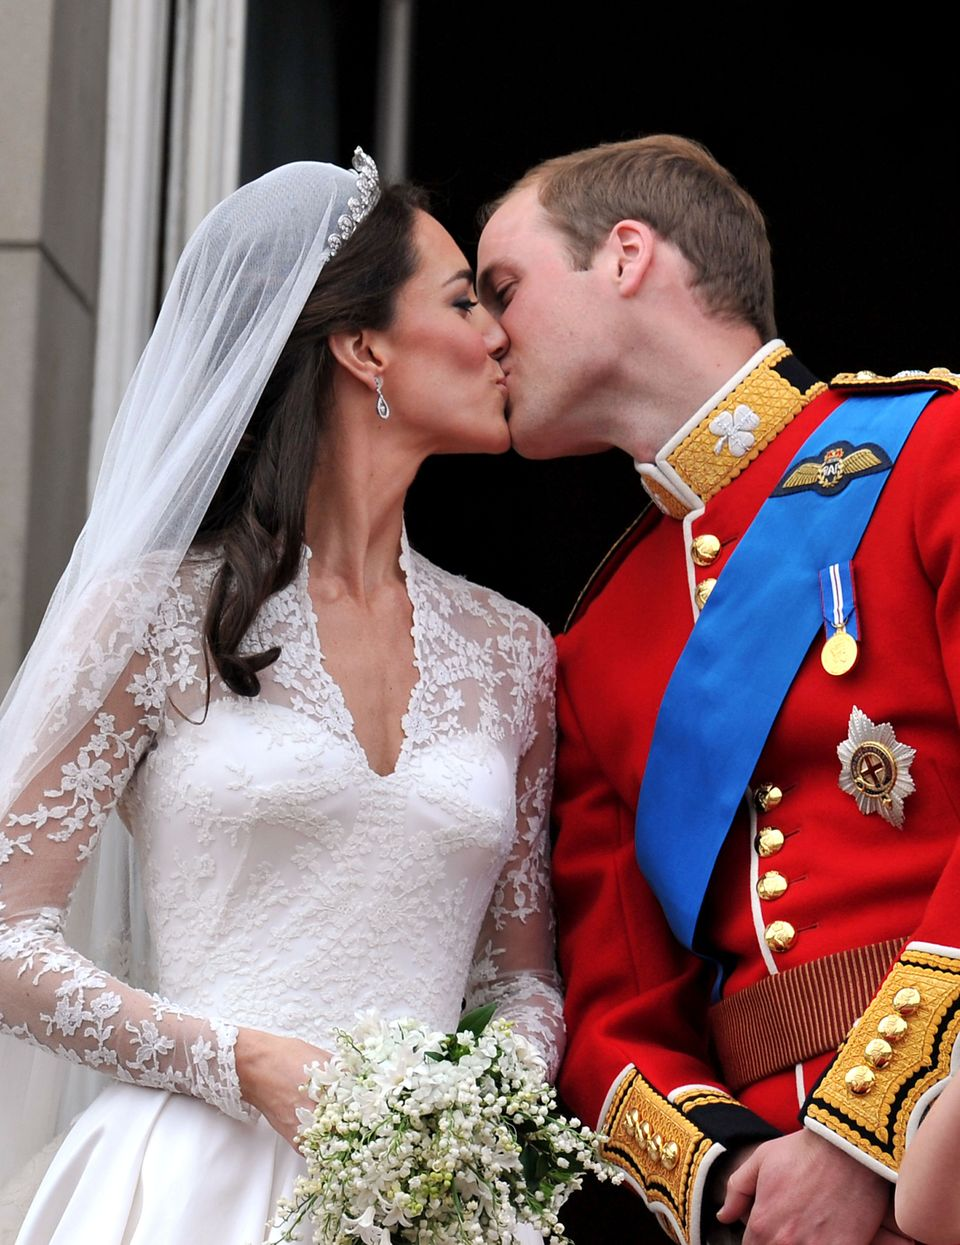 Thewedding of Prince William and Catherine Middletontook place on 29 April 2011